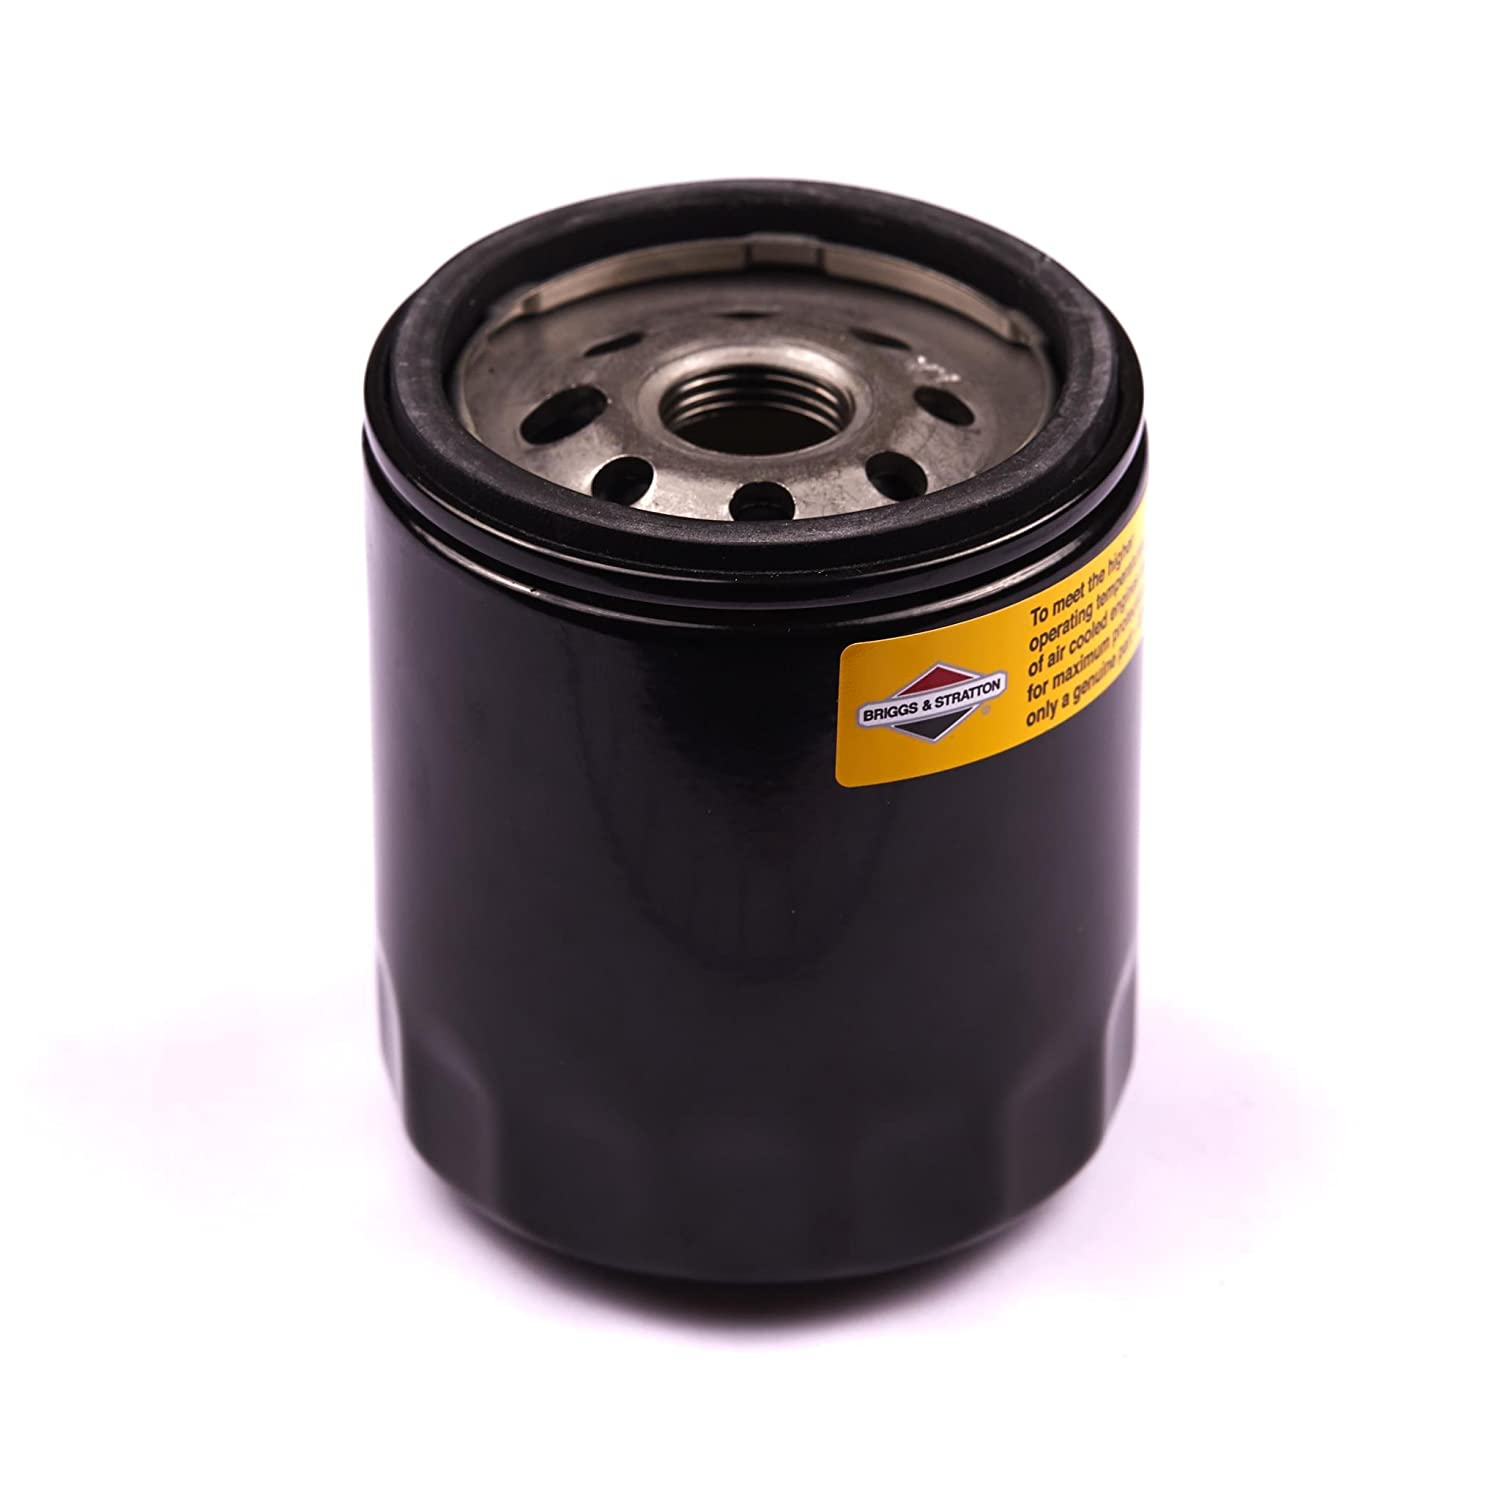 Briggs & Stratton 491056 Oil Filter